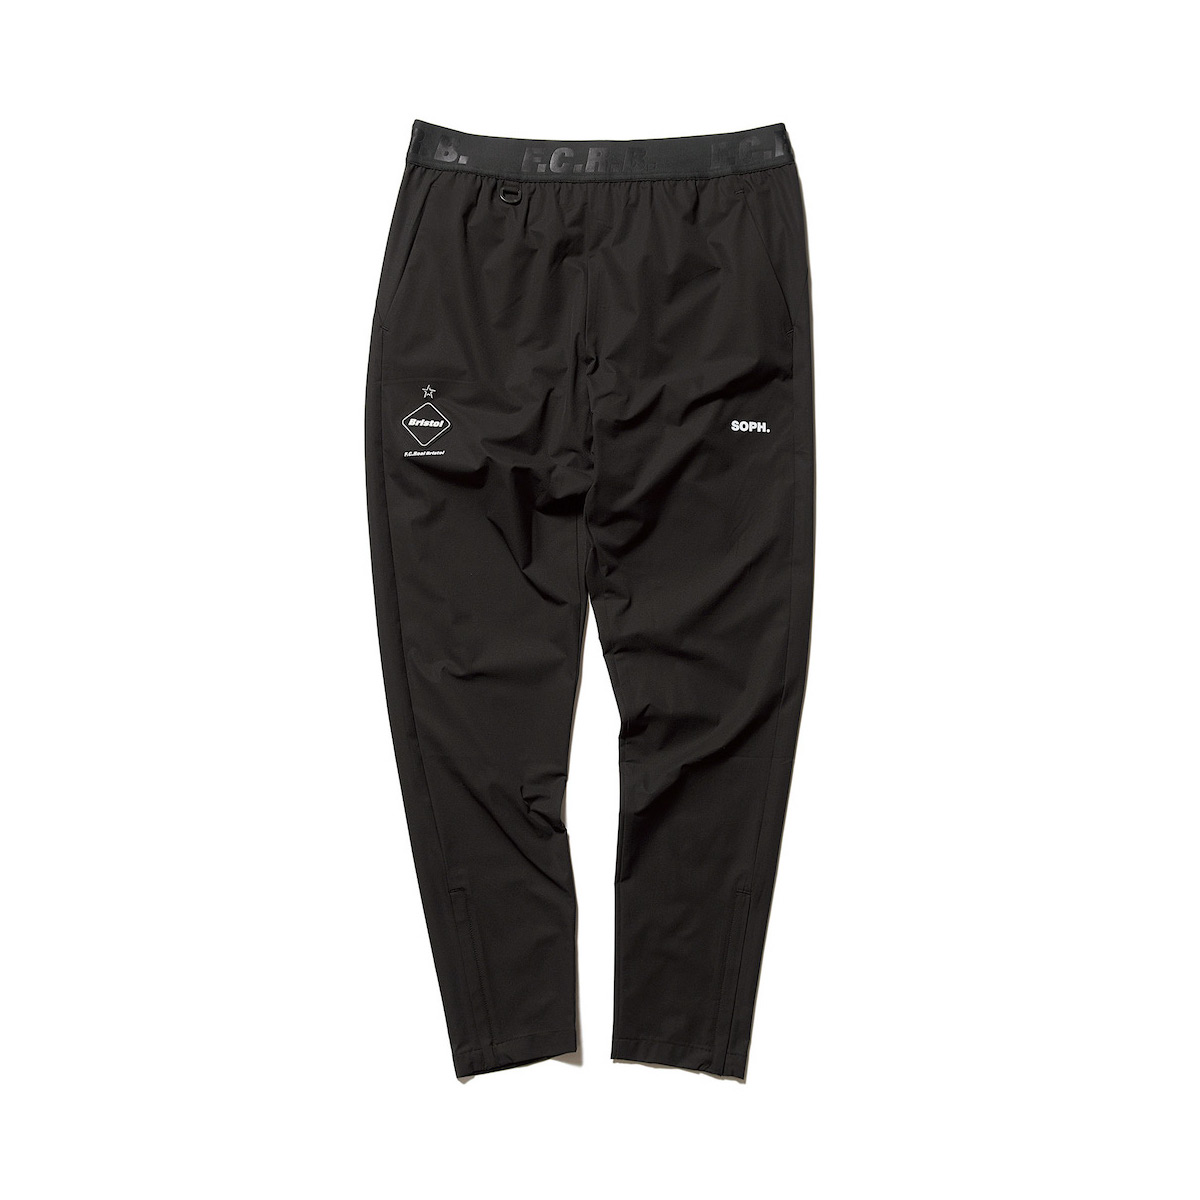 F.C.Real Bristol / STRETCH LIGHT WEIGHT EASY PANTS (Black)